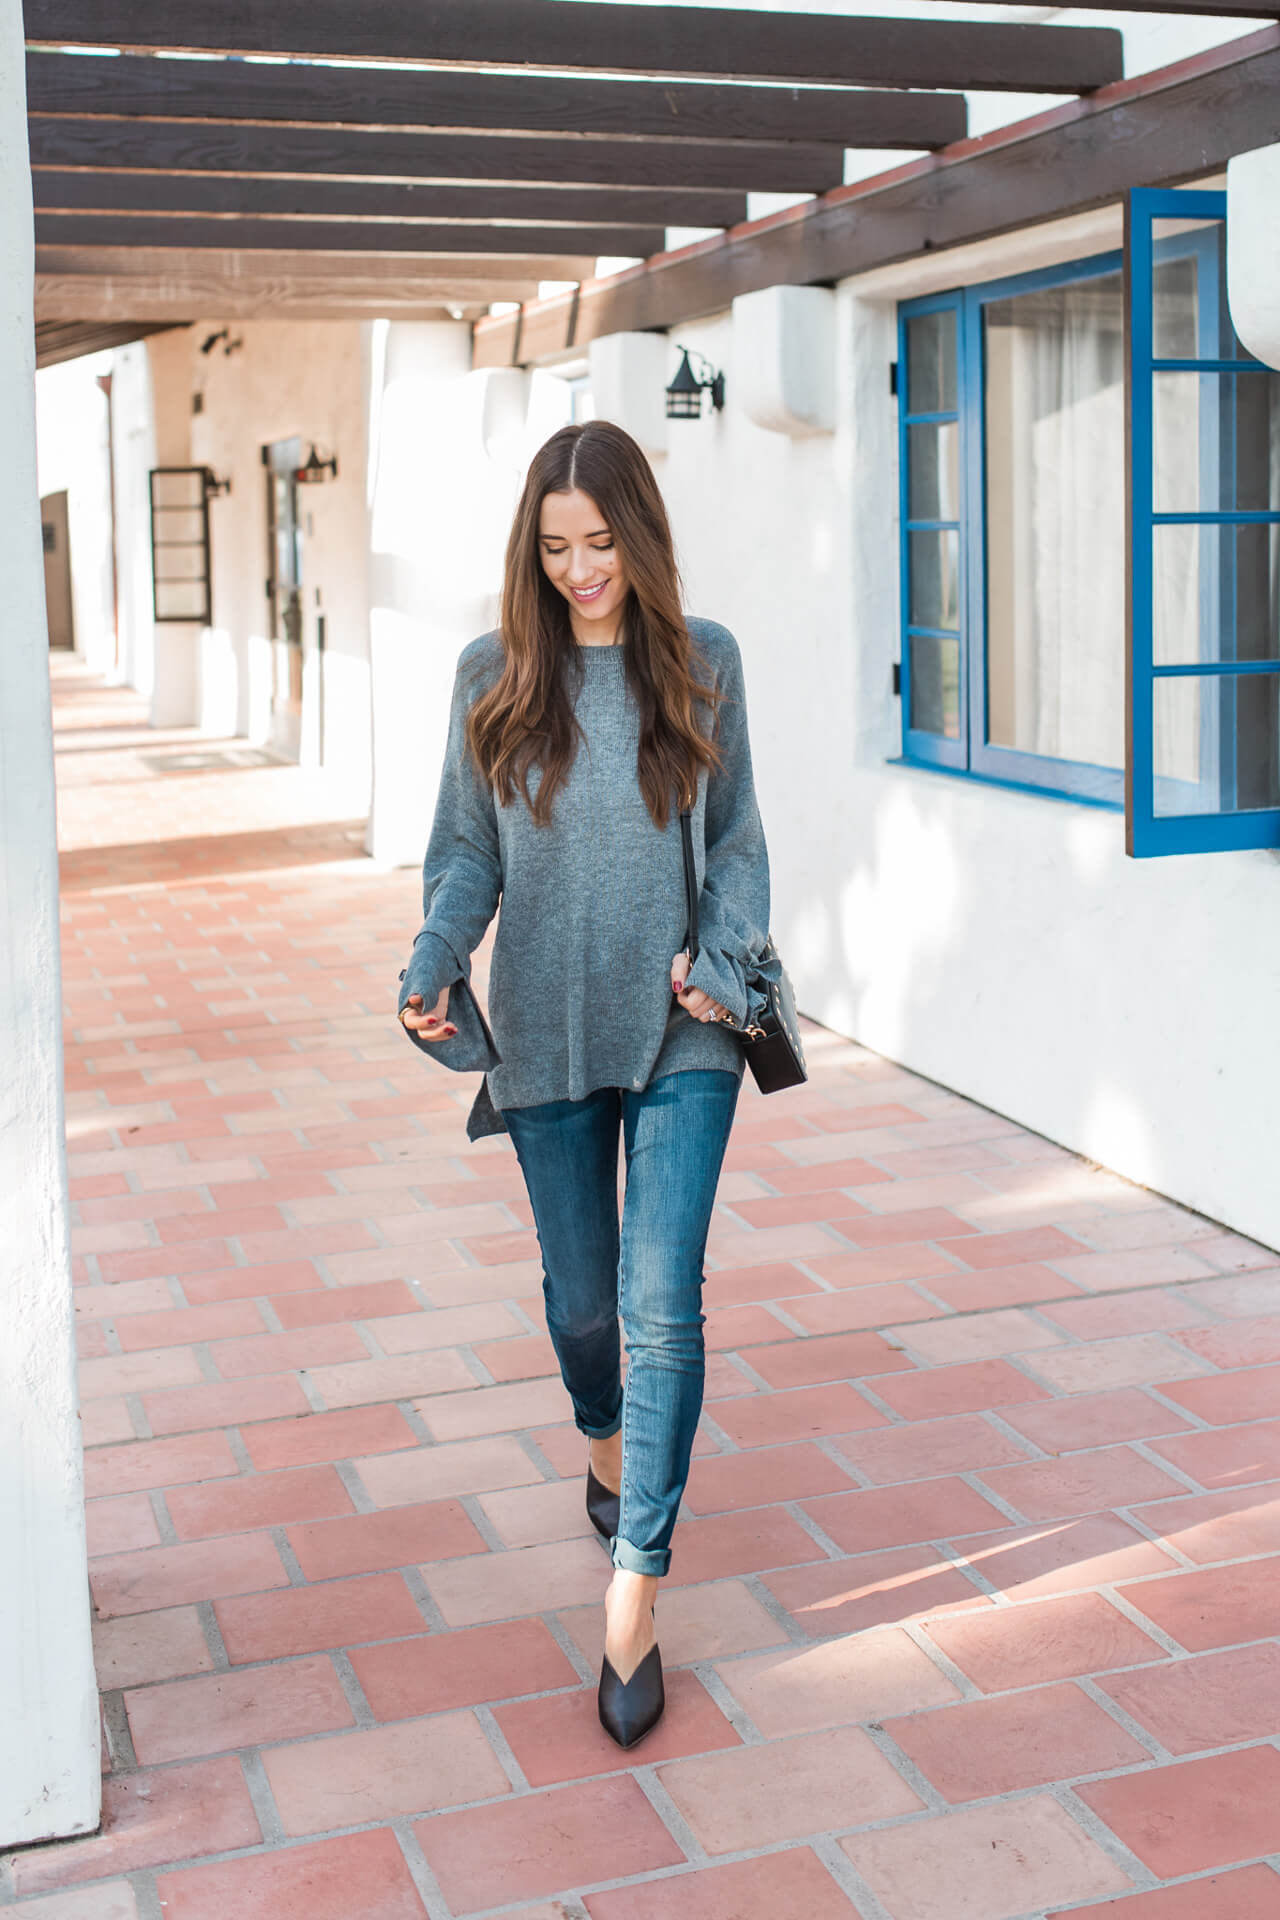 a casual way to dress up a simple outfit